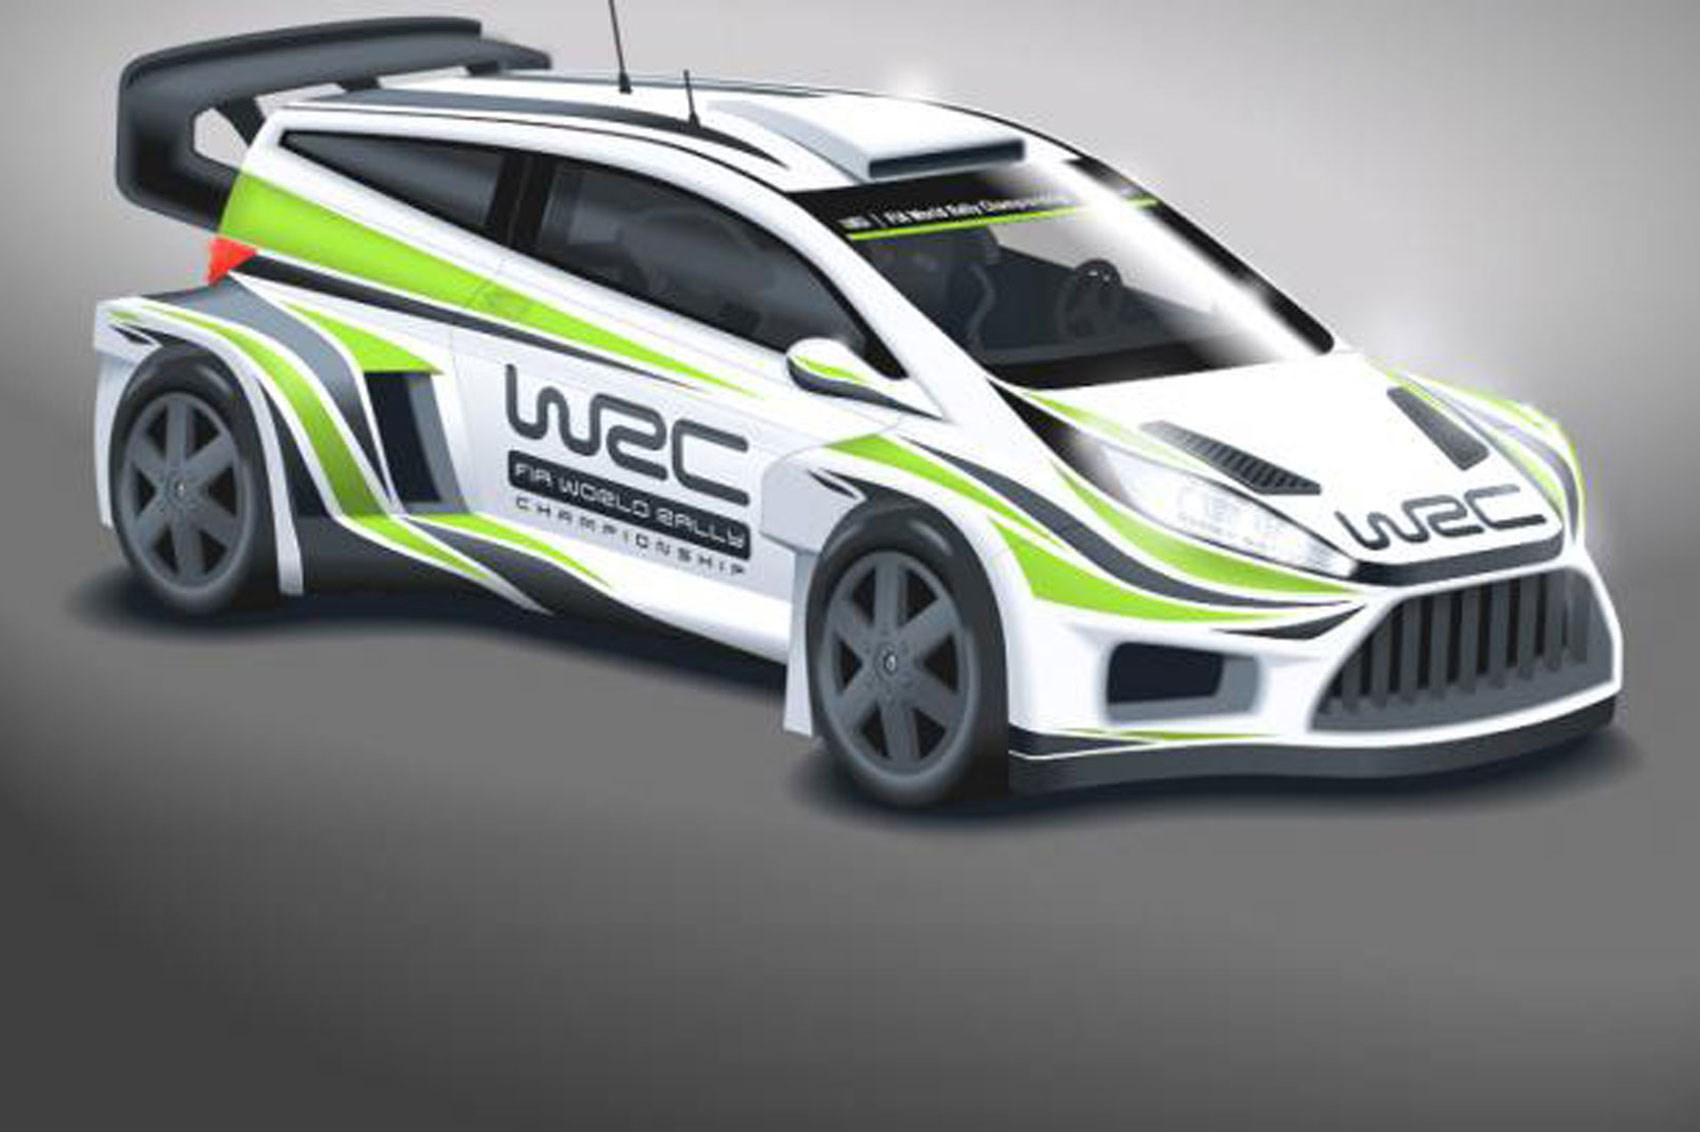 Ultrablogus  Terrific Wild New Look For Wrc Cars In  By Car Magazine With Luxury Wrc Cars Will Get Wider Bodies Bigger Wings And More Power For  With Enchanting  Volkswagen Beetle Interior Also  Volkswagen Tiguan Interior In Addition Hummer Interior And Interior Car As Well As  Ford Focus Se Interior Additionally Gti Plaid Interior From Carmagazinecouk With Ultrablogus  Luxury Wild New Look For Wrc Cars In  By Car Magazine With Enchanting Wrc Cars Will Get Wider Bodies Bigger Wings And More Power For  And Terrific  Volkswagen Beetle Interior Also  Volkswagen Tiguan Interior In Addition Hummer Interior From Carmagazinecouk